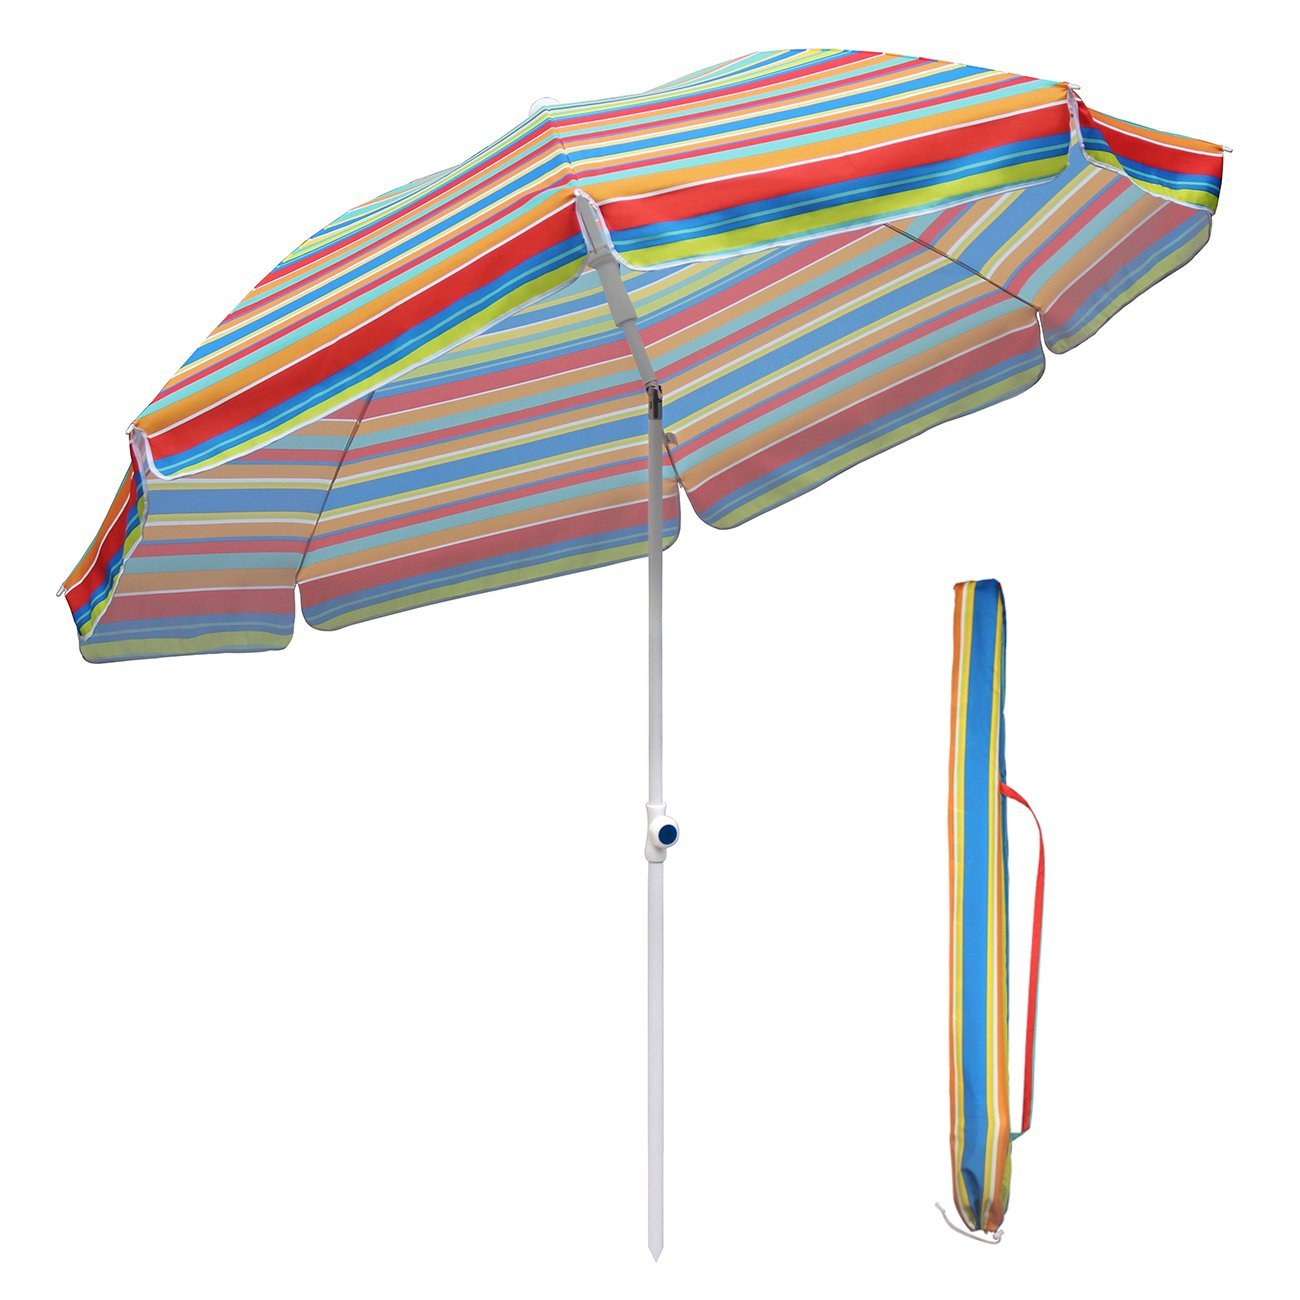 Sekey 7ft Beach Umbrella Outdoor Umbrella Patio Umbrella Market Umbrella with tilt and crank, 100% polyester, Sunscreen UV 25+, Round